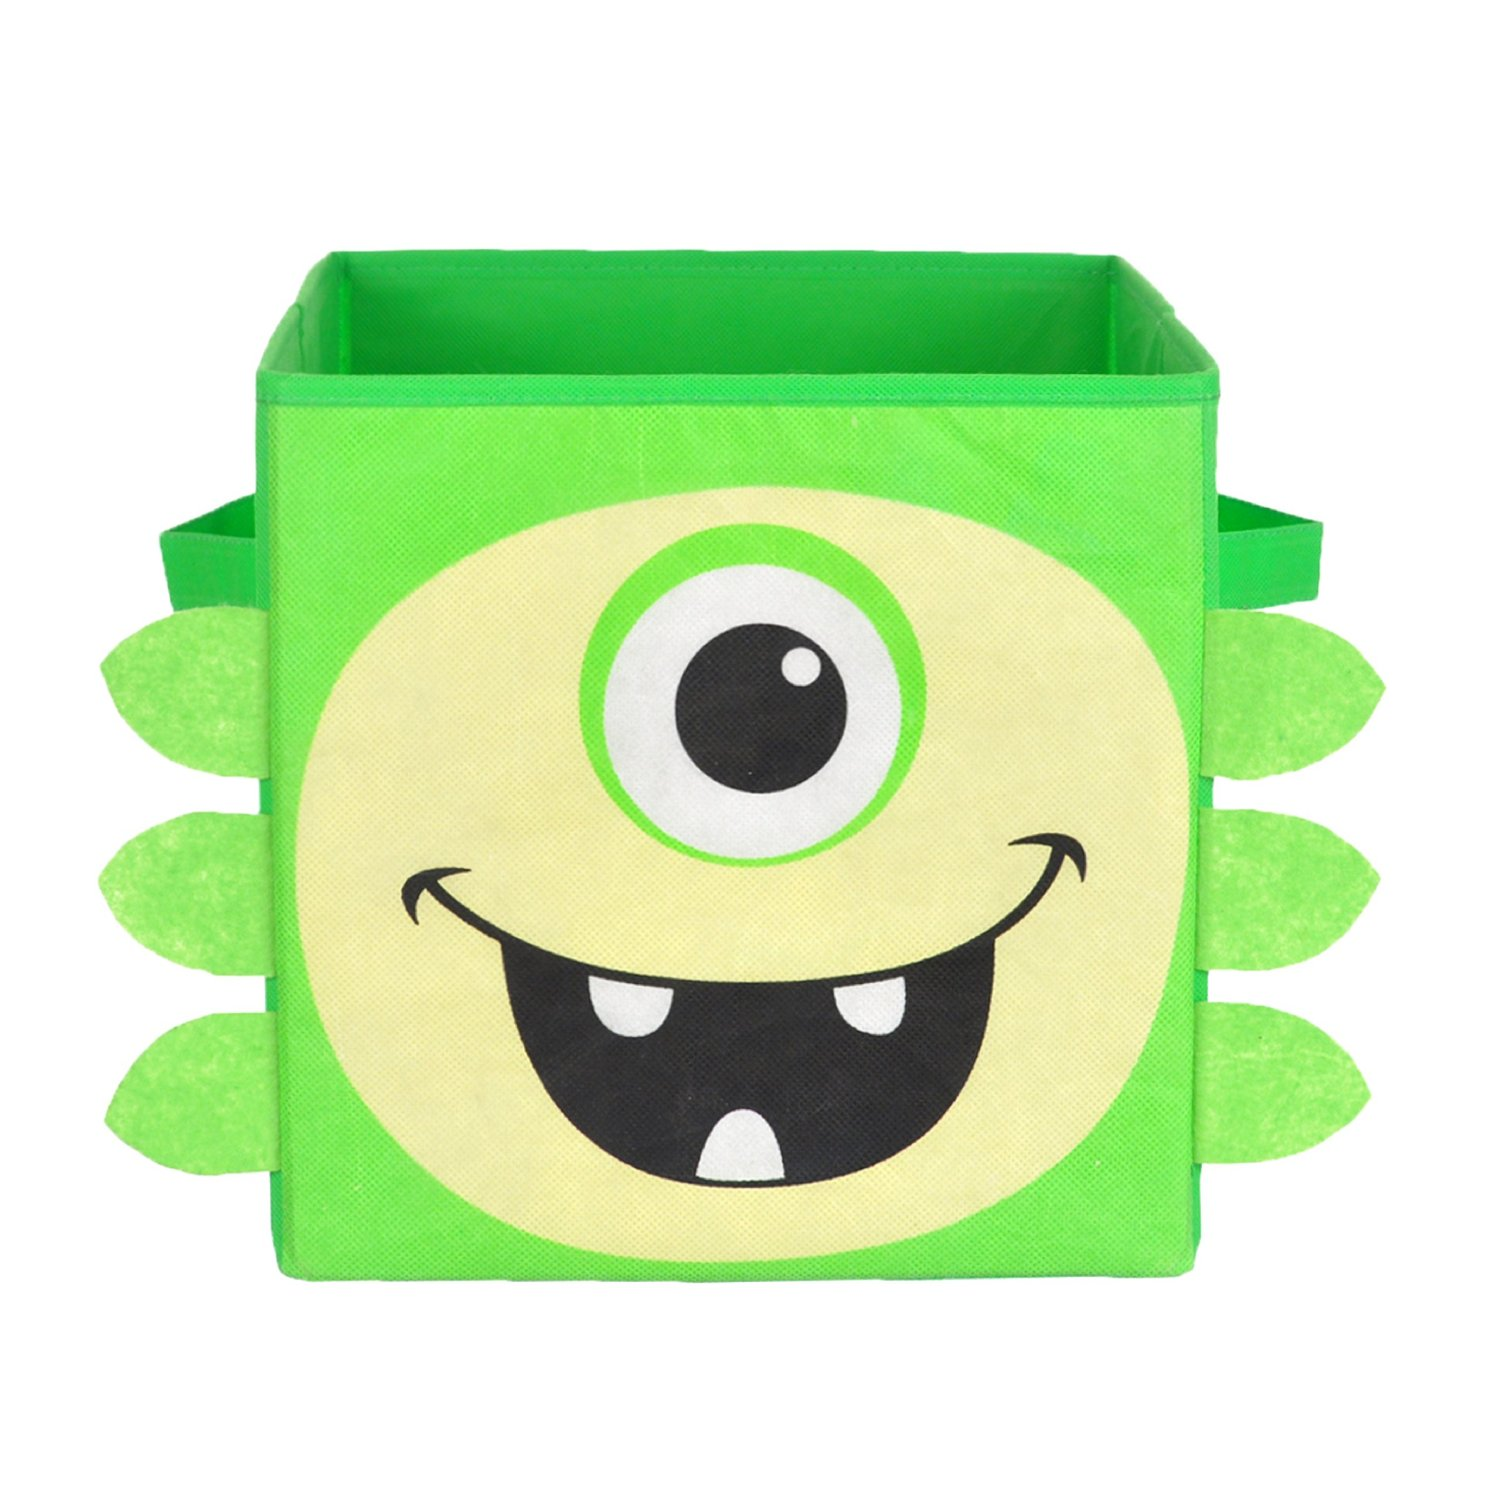 Nuby Storage Box - iMonster Green